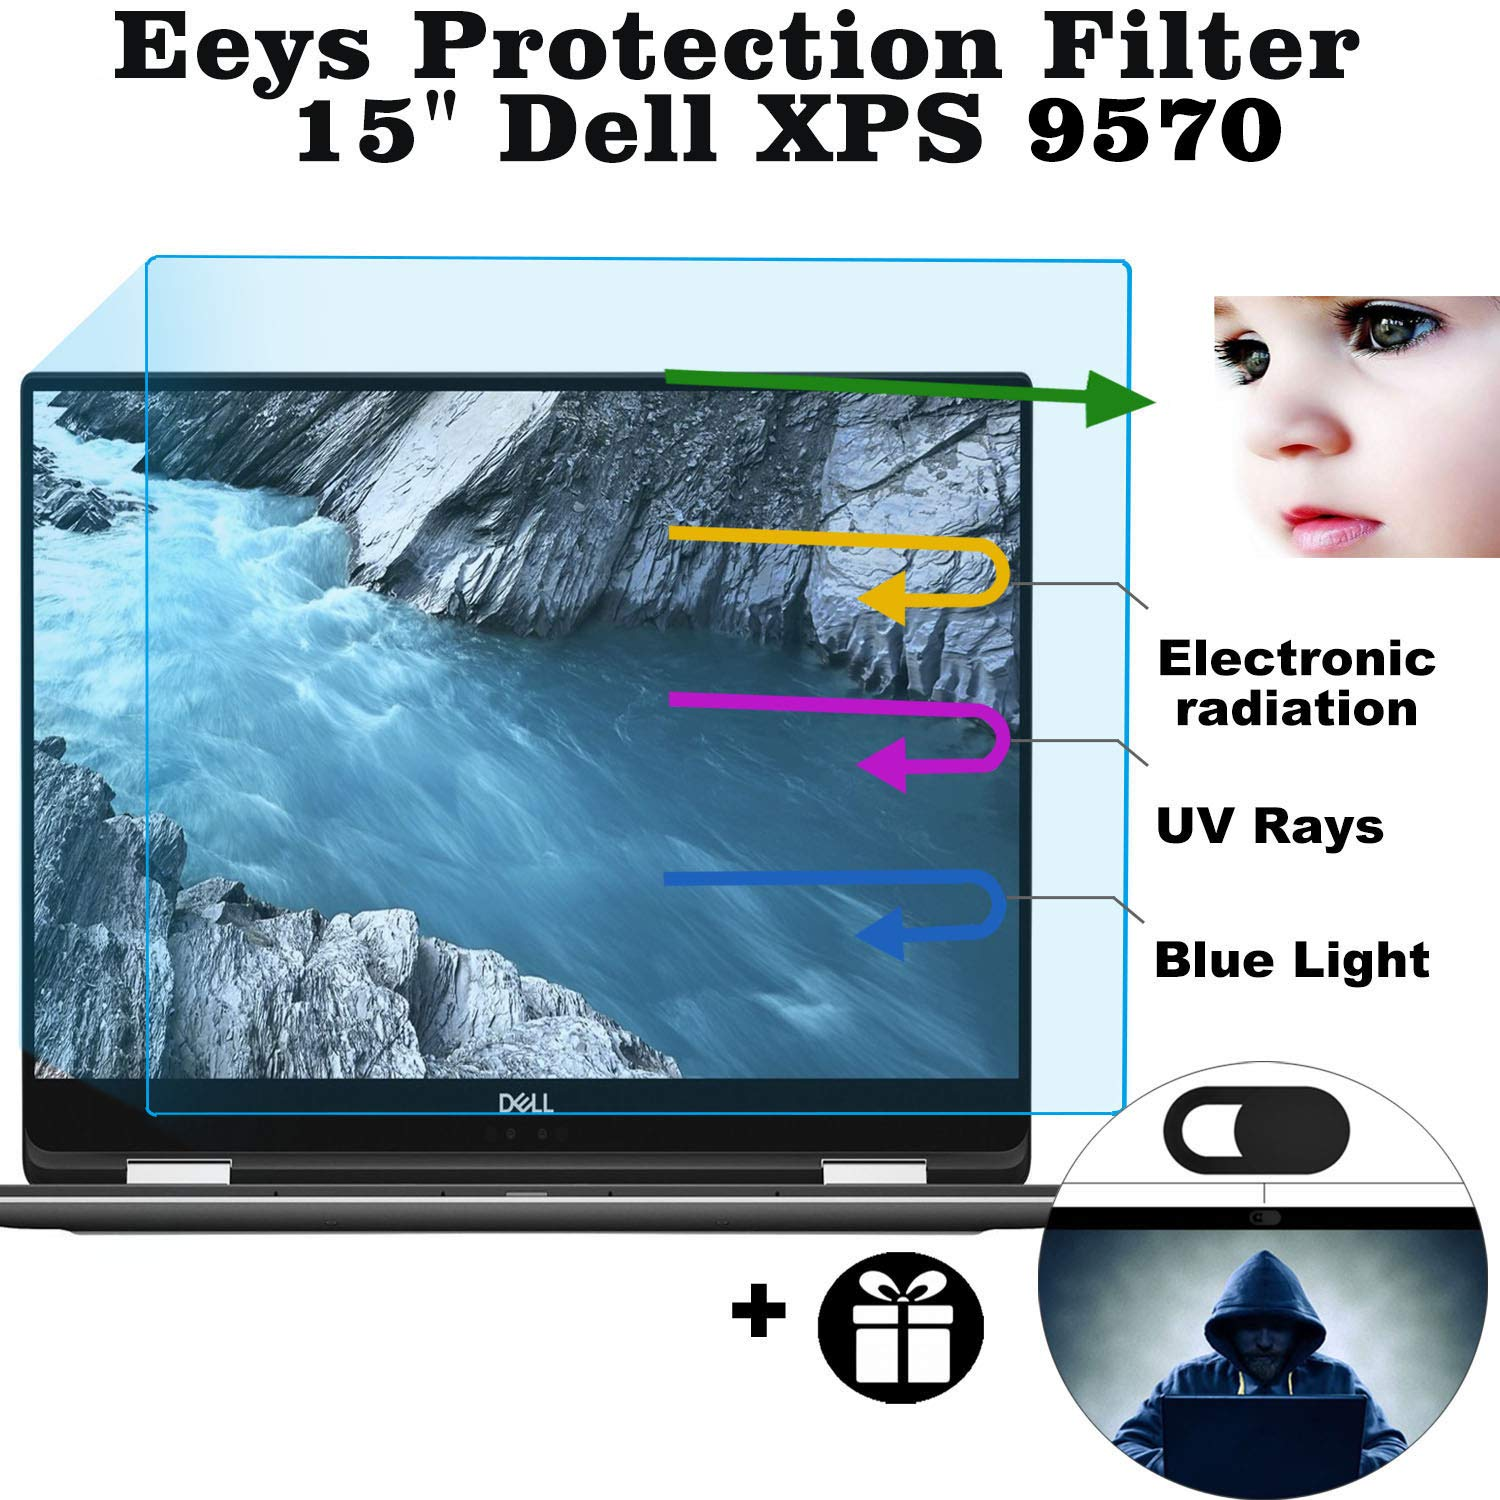 Eyes Protection Filter fit Dell XPS 15 9570 Anti Blue Light Anti Glare Screen Protector, Reduces Digital Eye Strain Help You Sleep Better by MUBUY